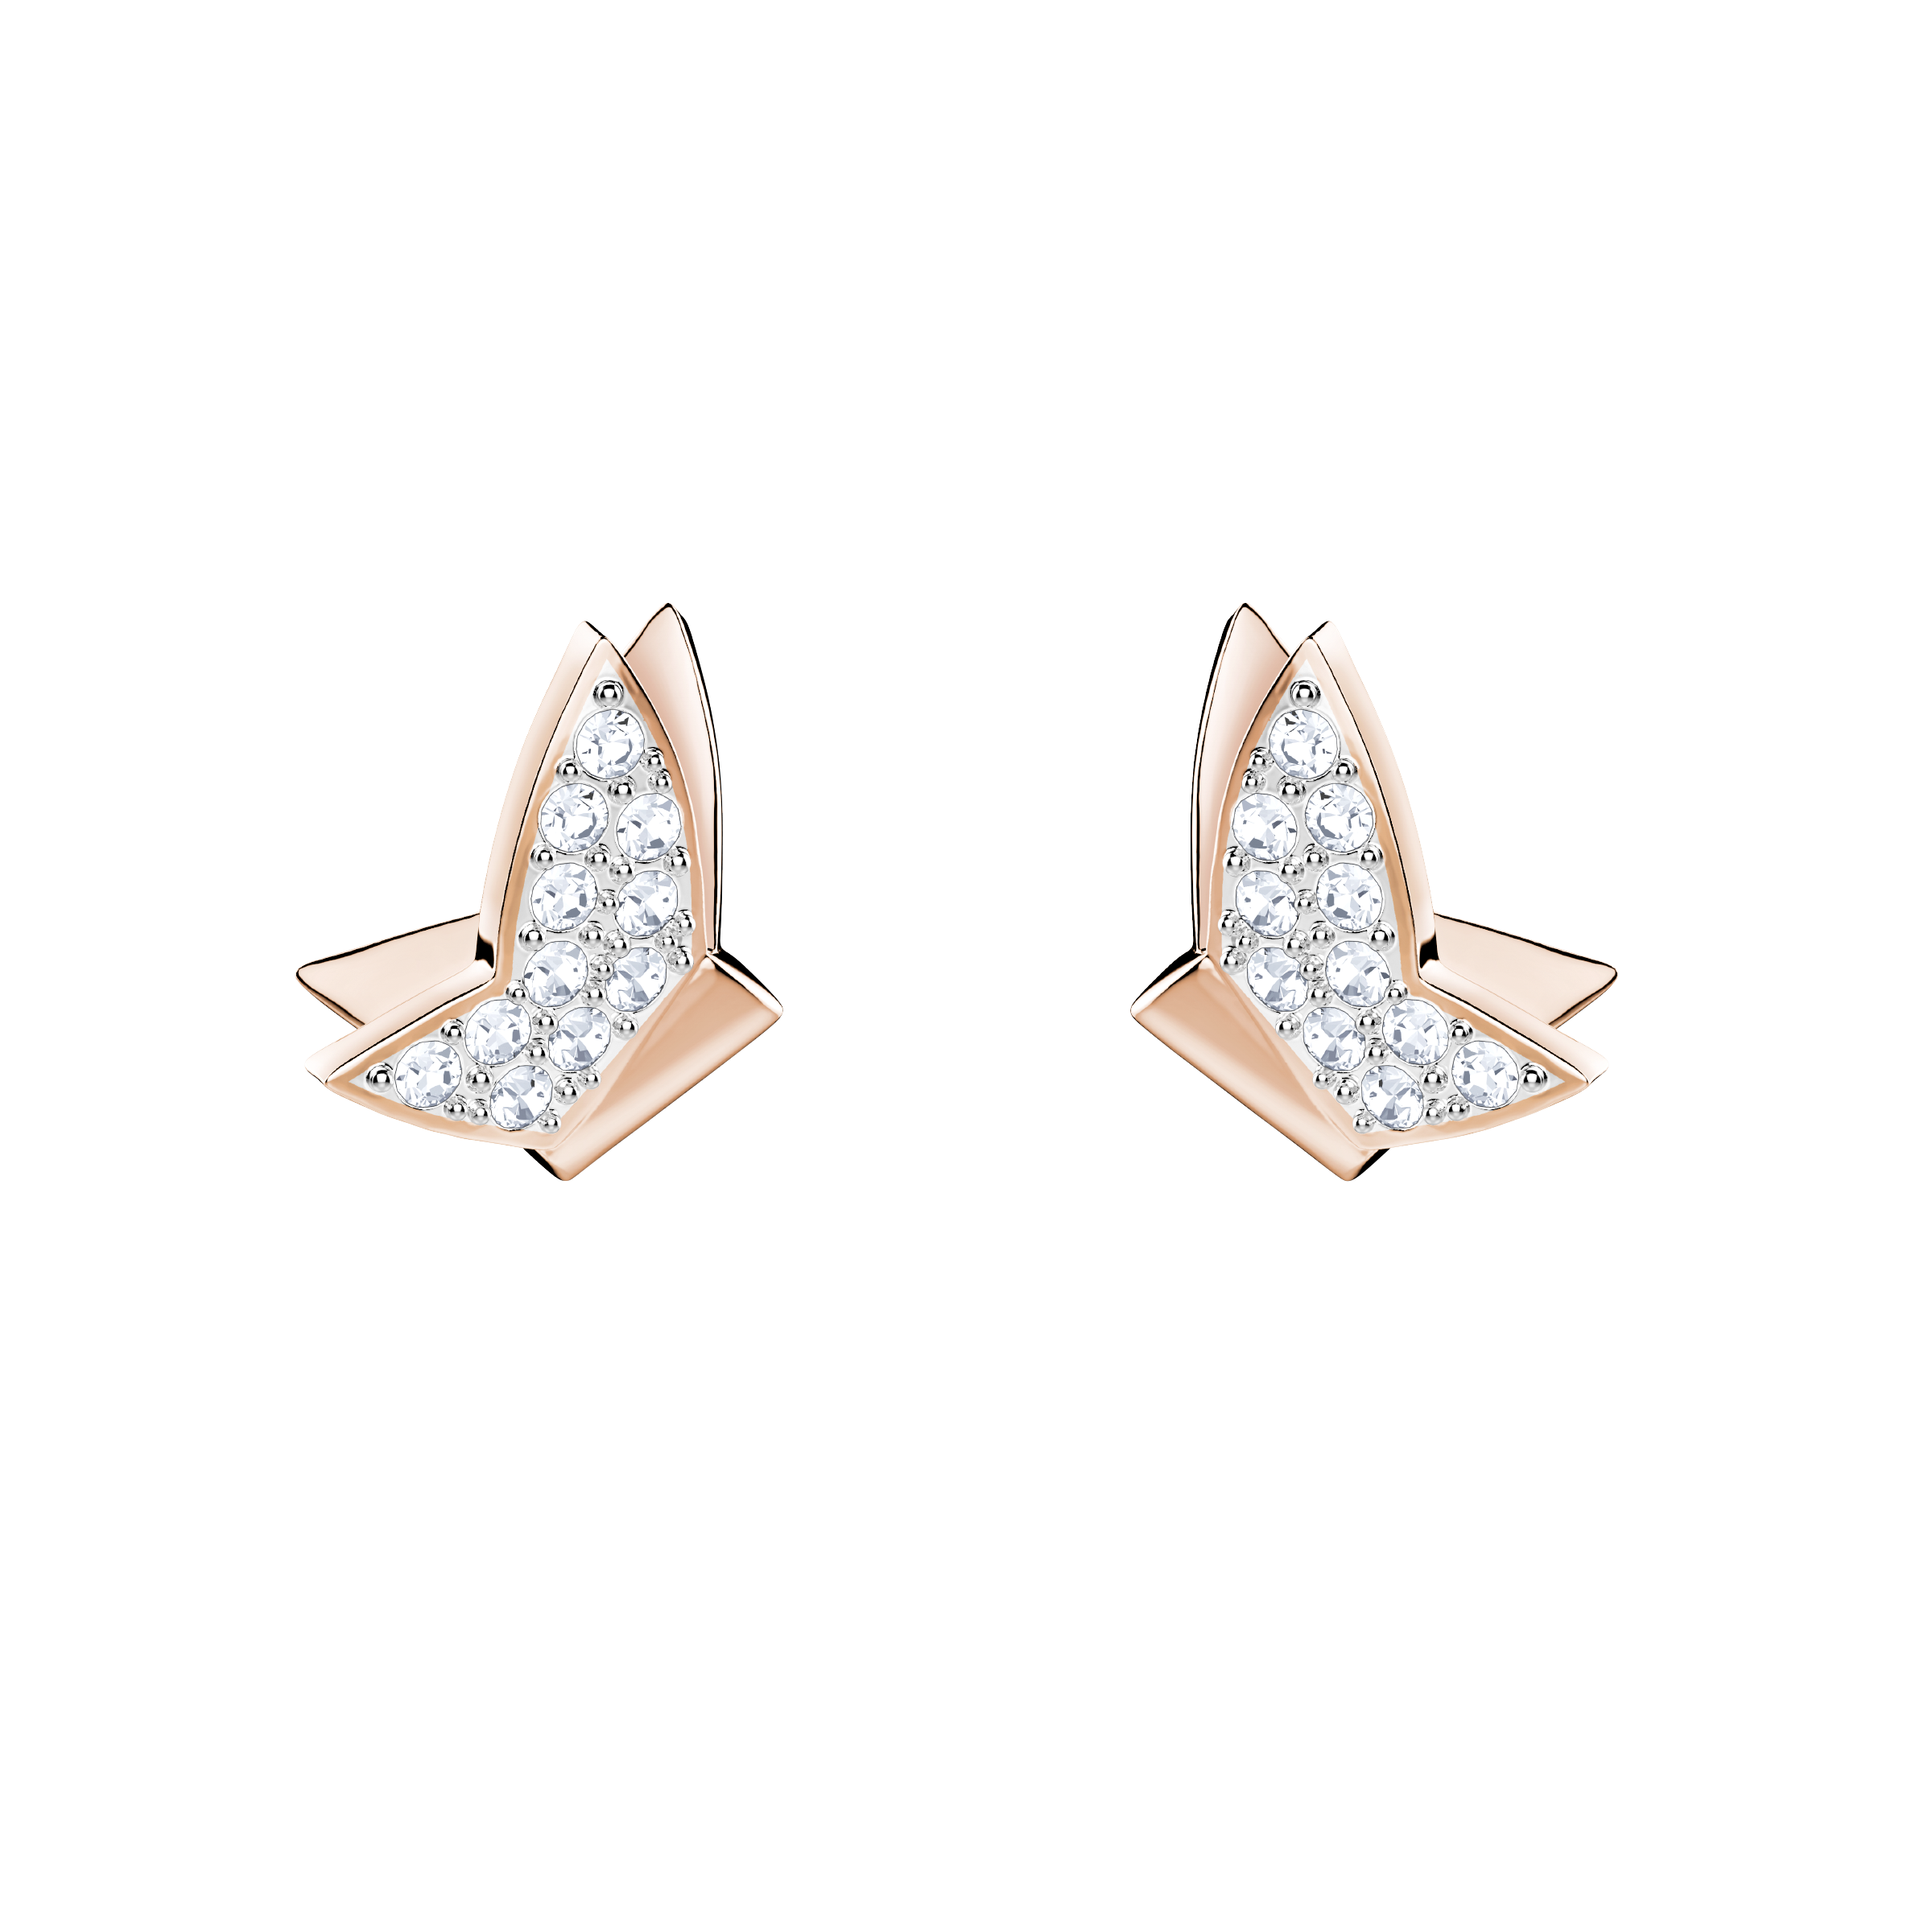 Lilia Fig Pierced Earrings, White, Rose Gold Plating